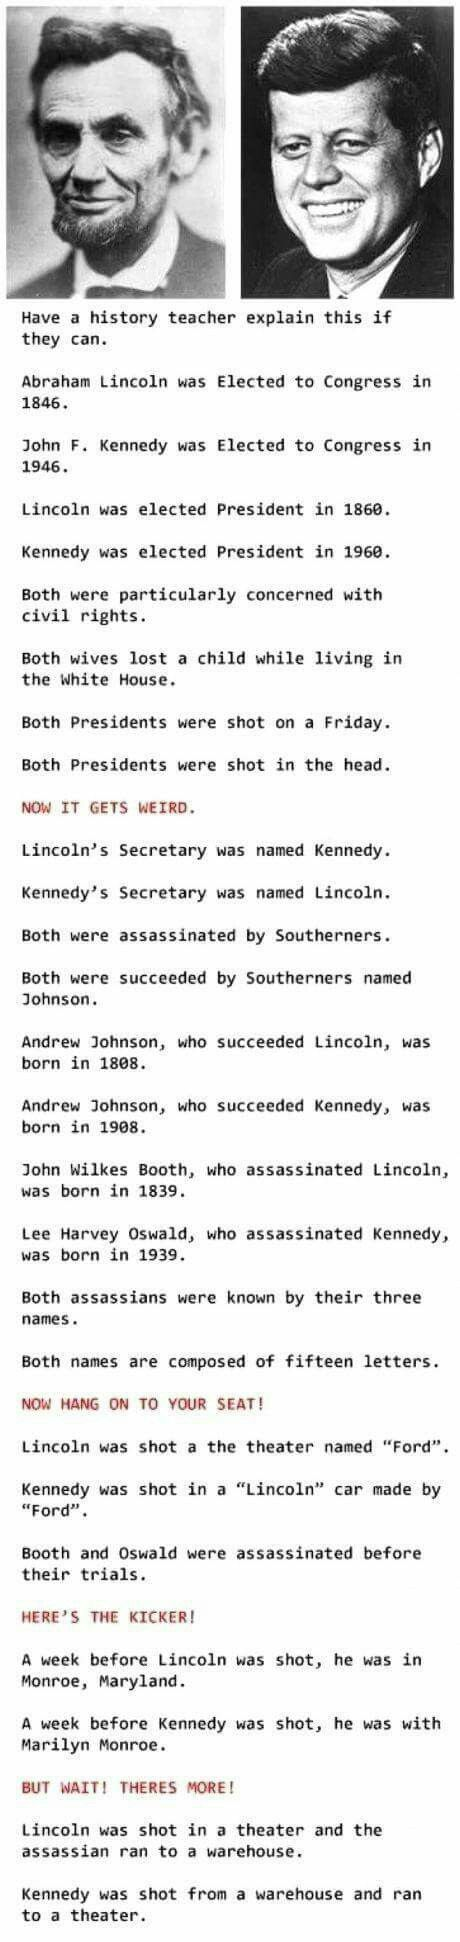 Lincoln/Kennedy